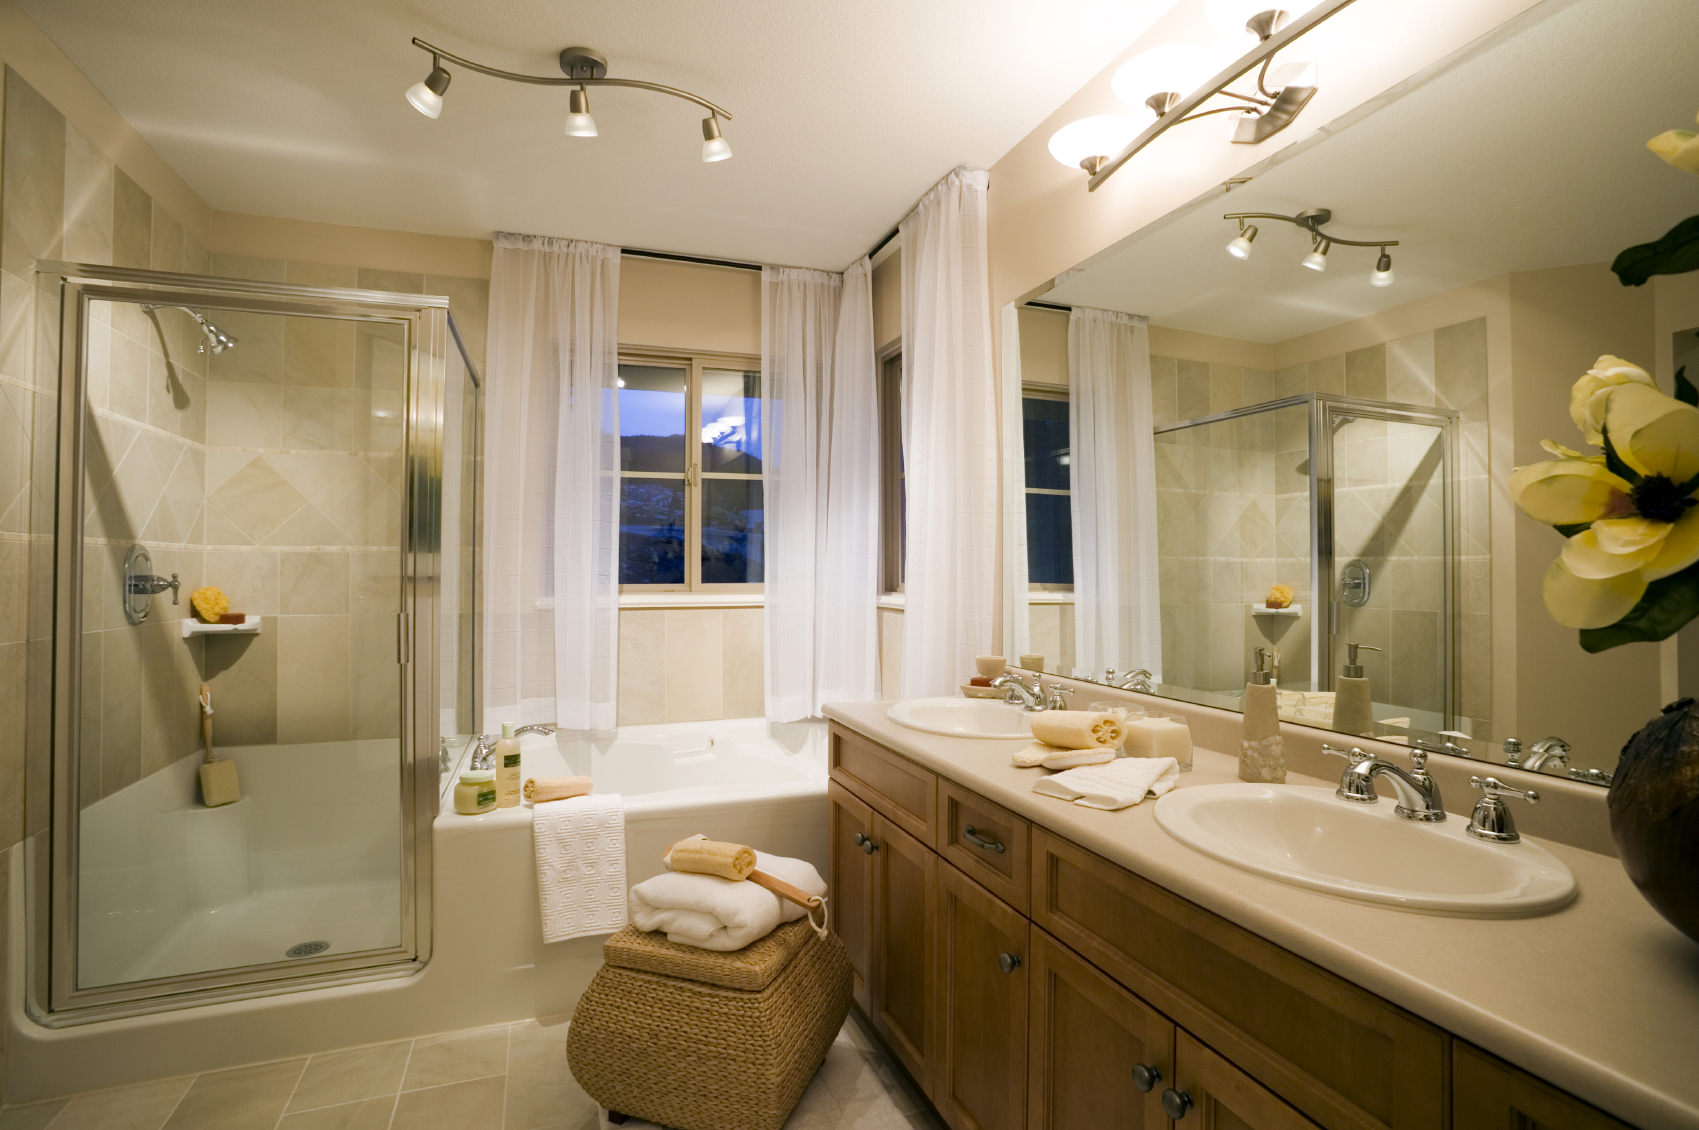 Small bathroom window treatments 6711 for Tub remodel